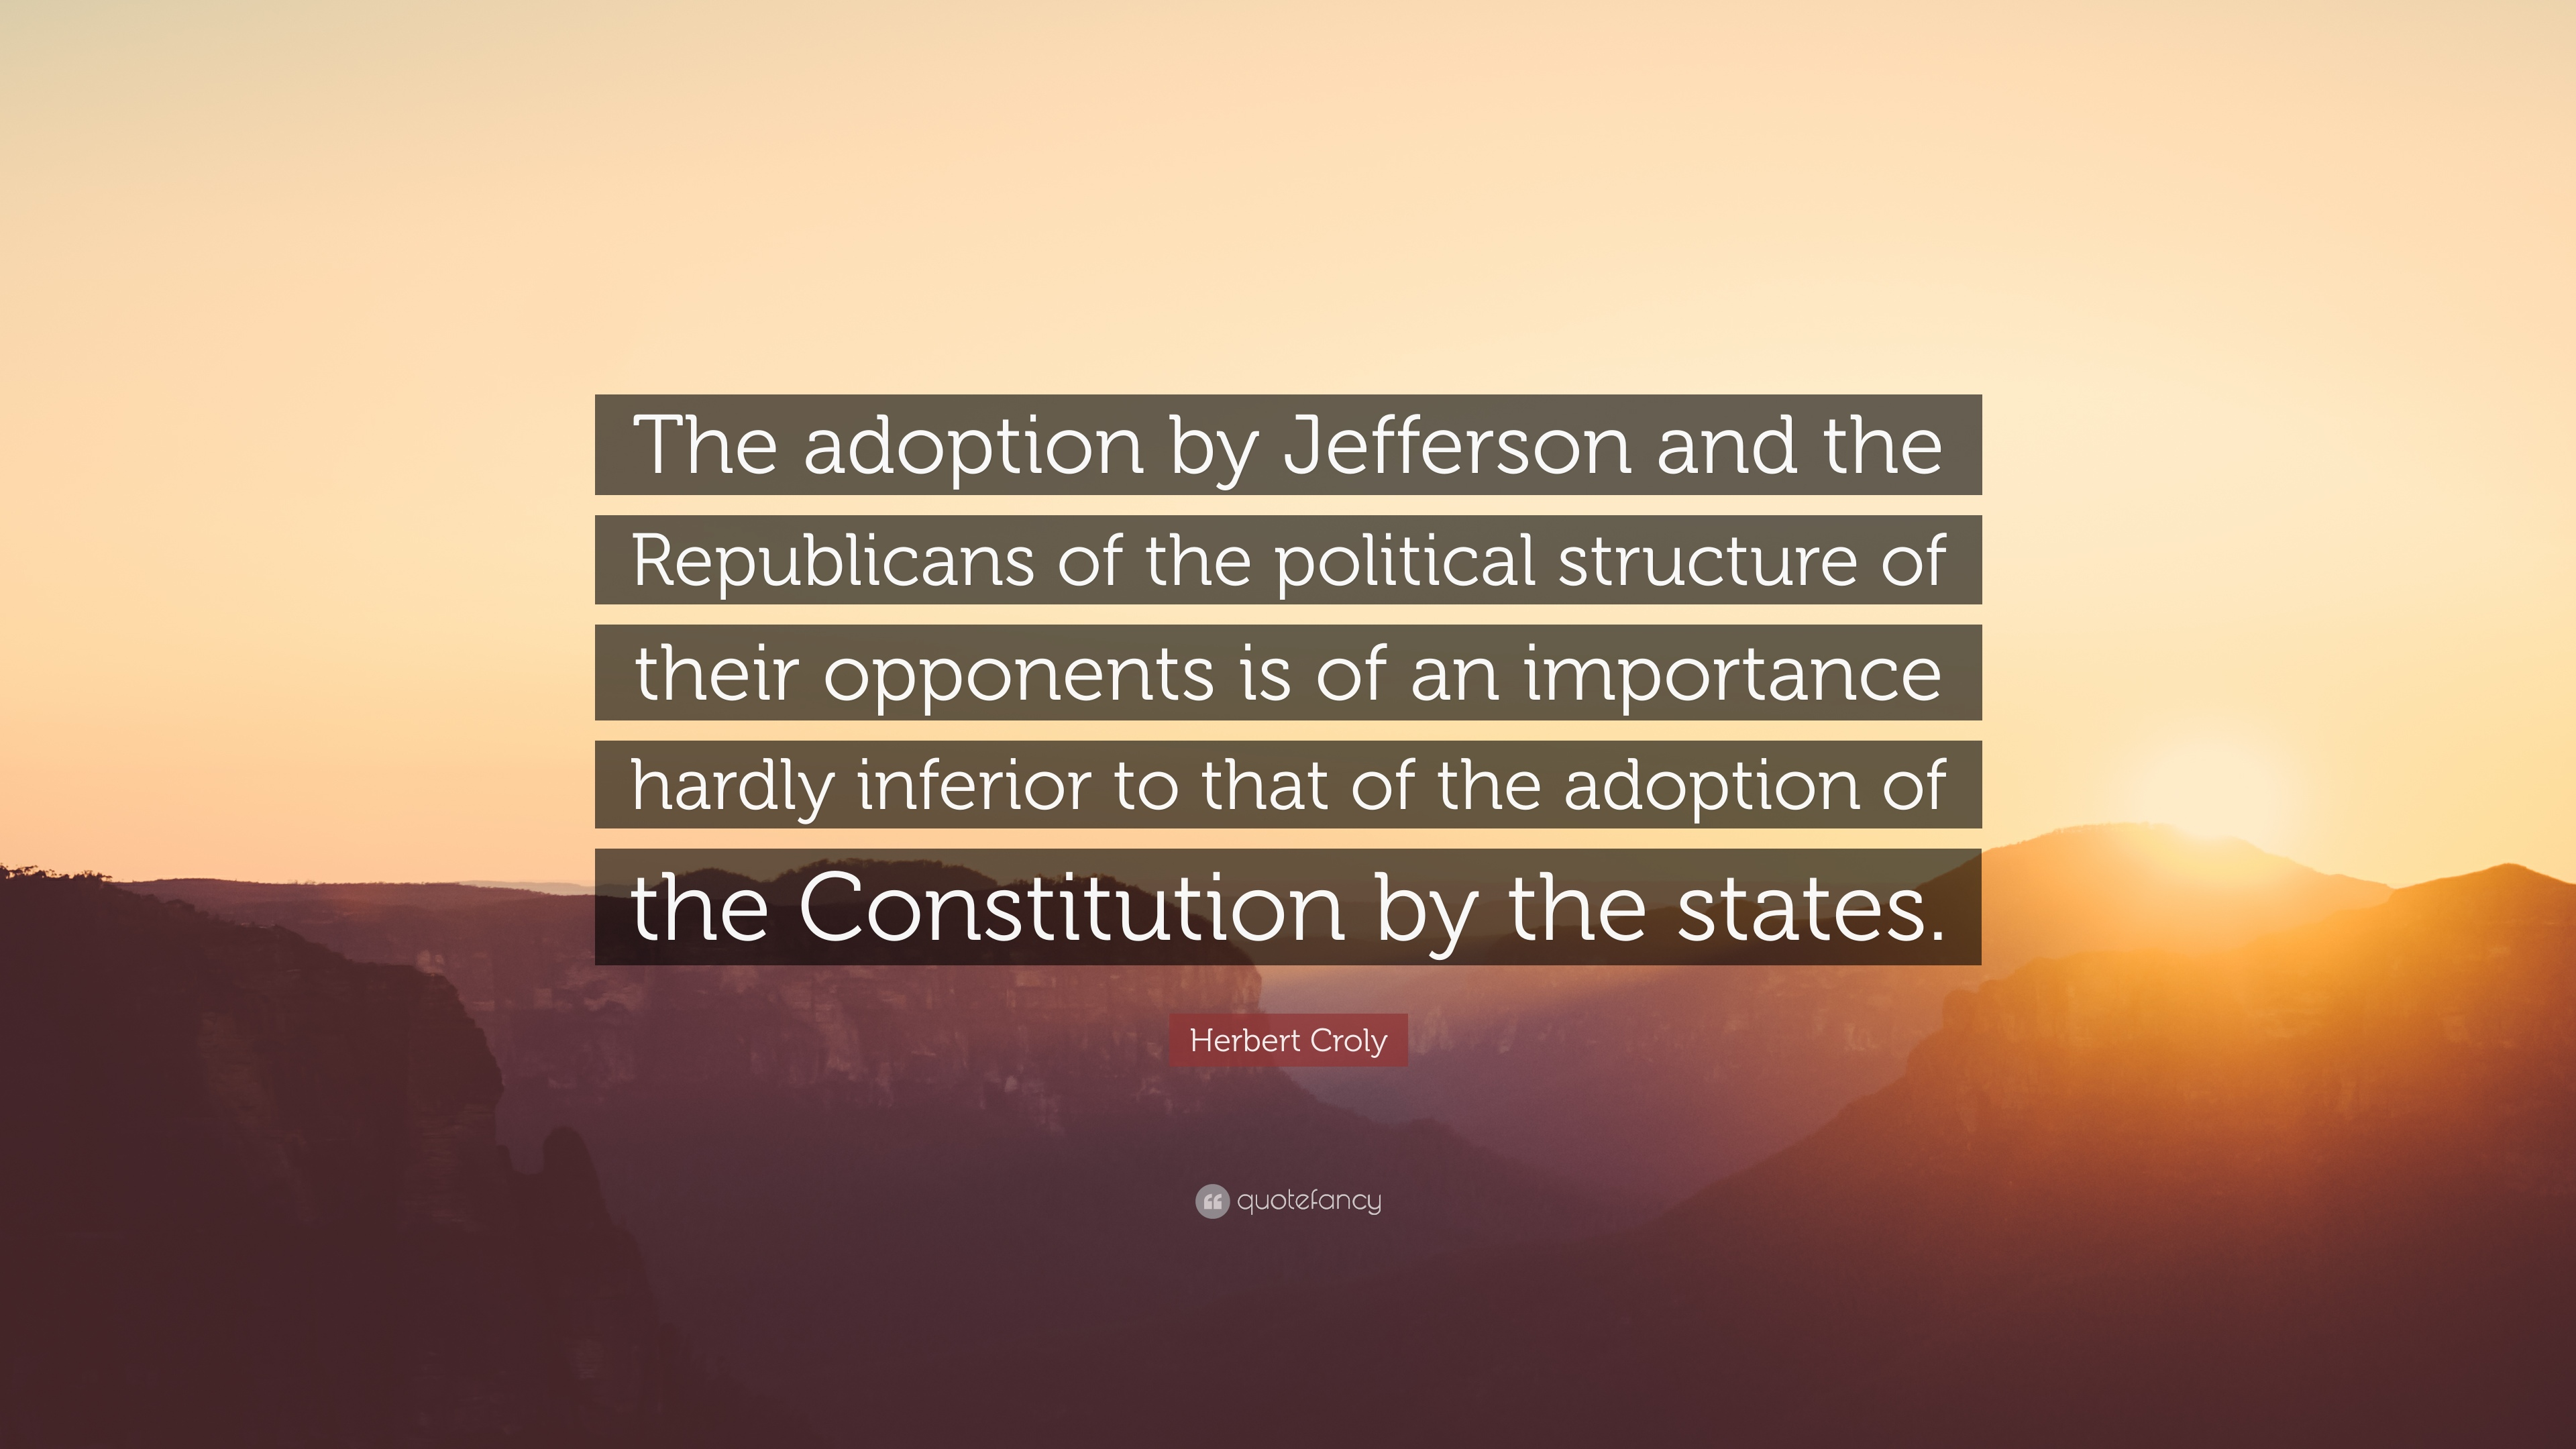 Herbert Croly Quote The Adoption By Jefferson And The Republicans Of The Political Structure Of Their Opponents Is Of An Importance Hardly I 7 Wallpapers Quotefancy